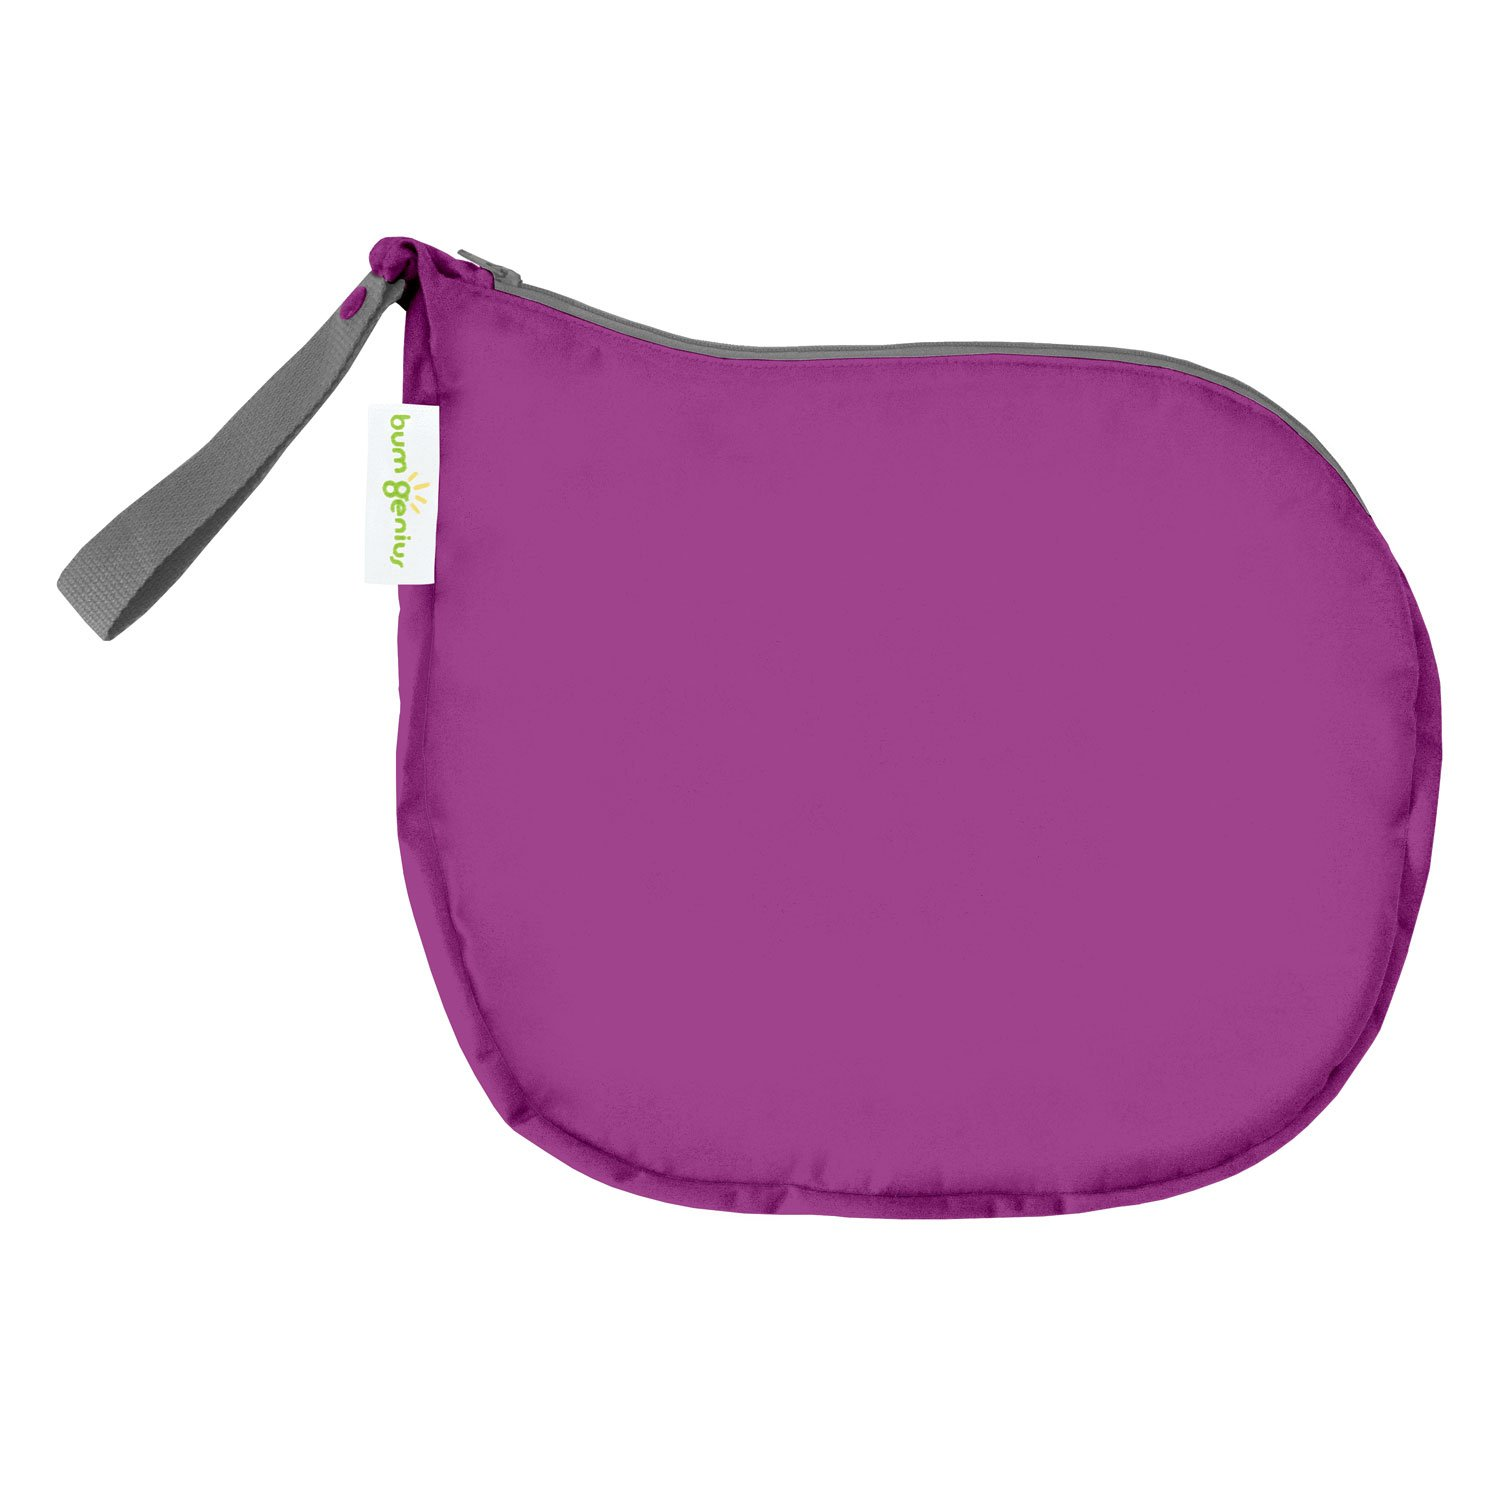 bumGenius Outing Wet Bag - Holds 3 to 5 Cloth Diapers (Dazzle)